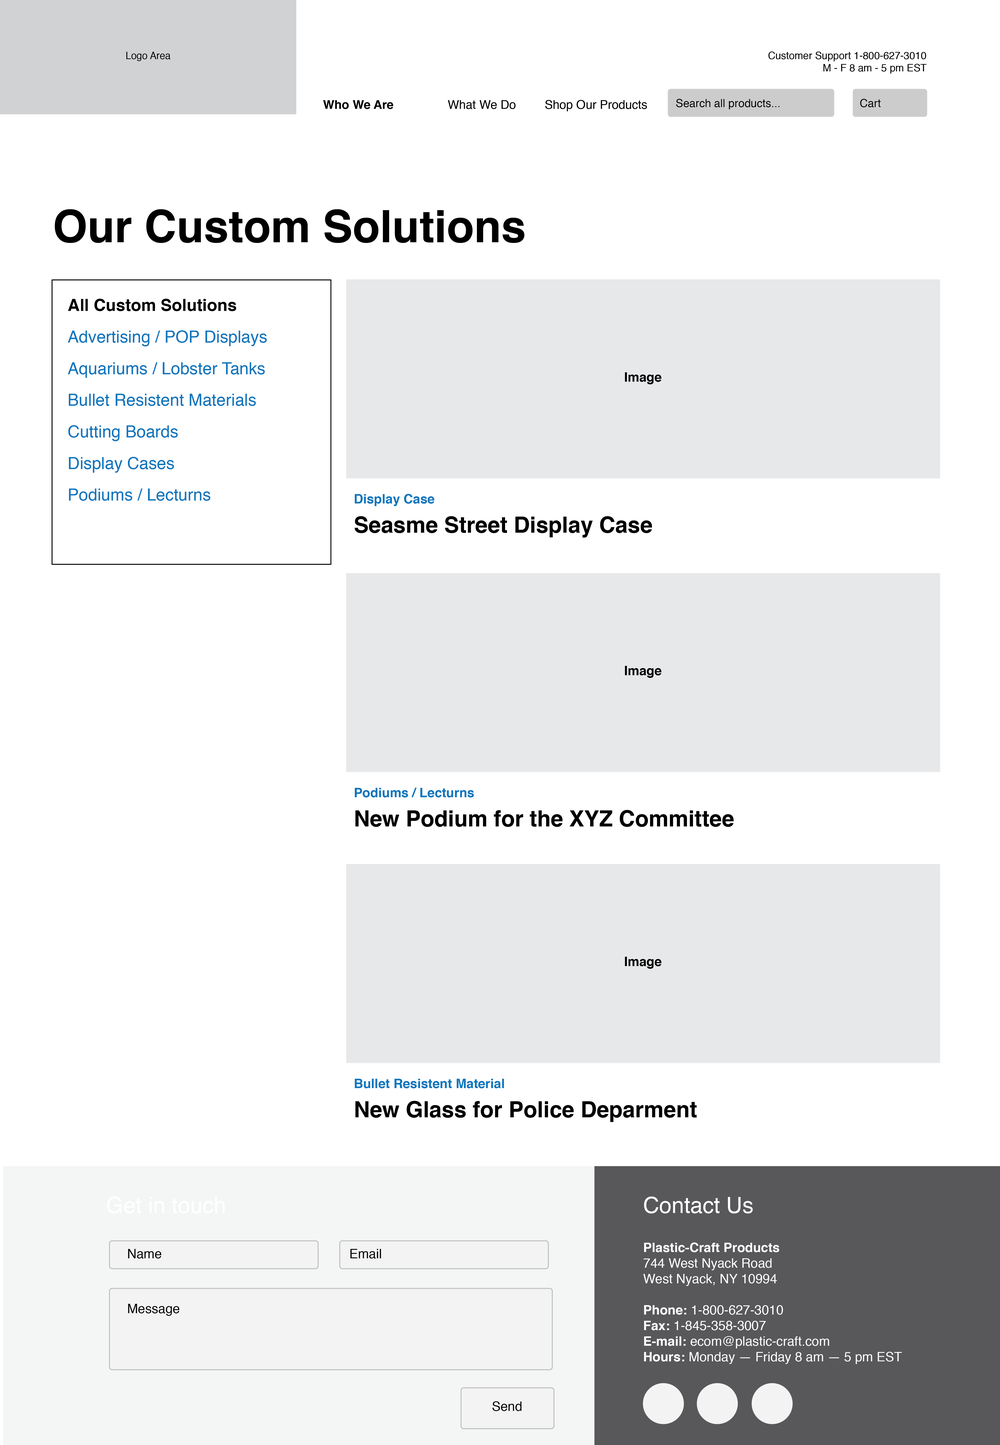 Plastic-Craft_CustomSolutions.png